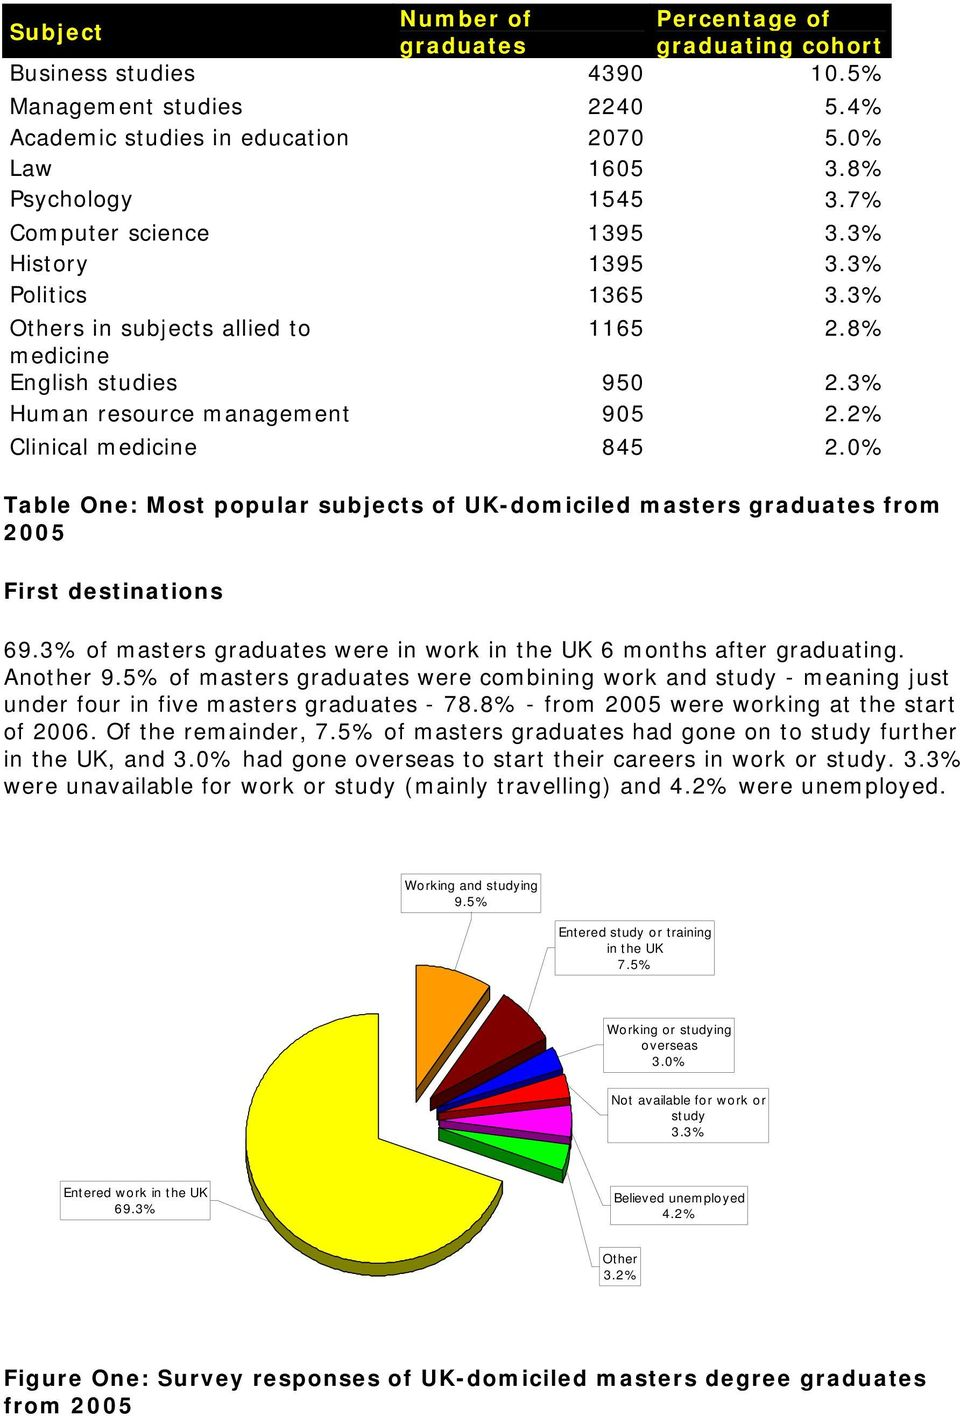 0% Table One: Most popular subjects of UK-domiciled masters graduates from 2005 First destinations 69.3% of masters graduates were in work in the UK 6 months after graduating. Another 9.